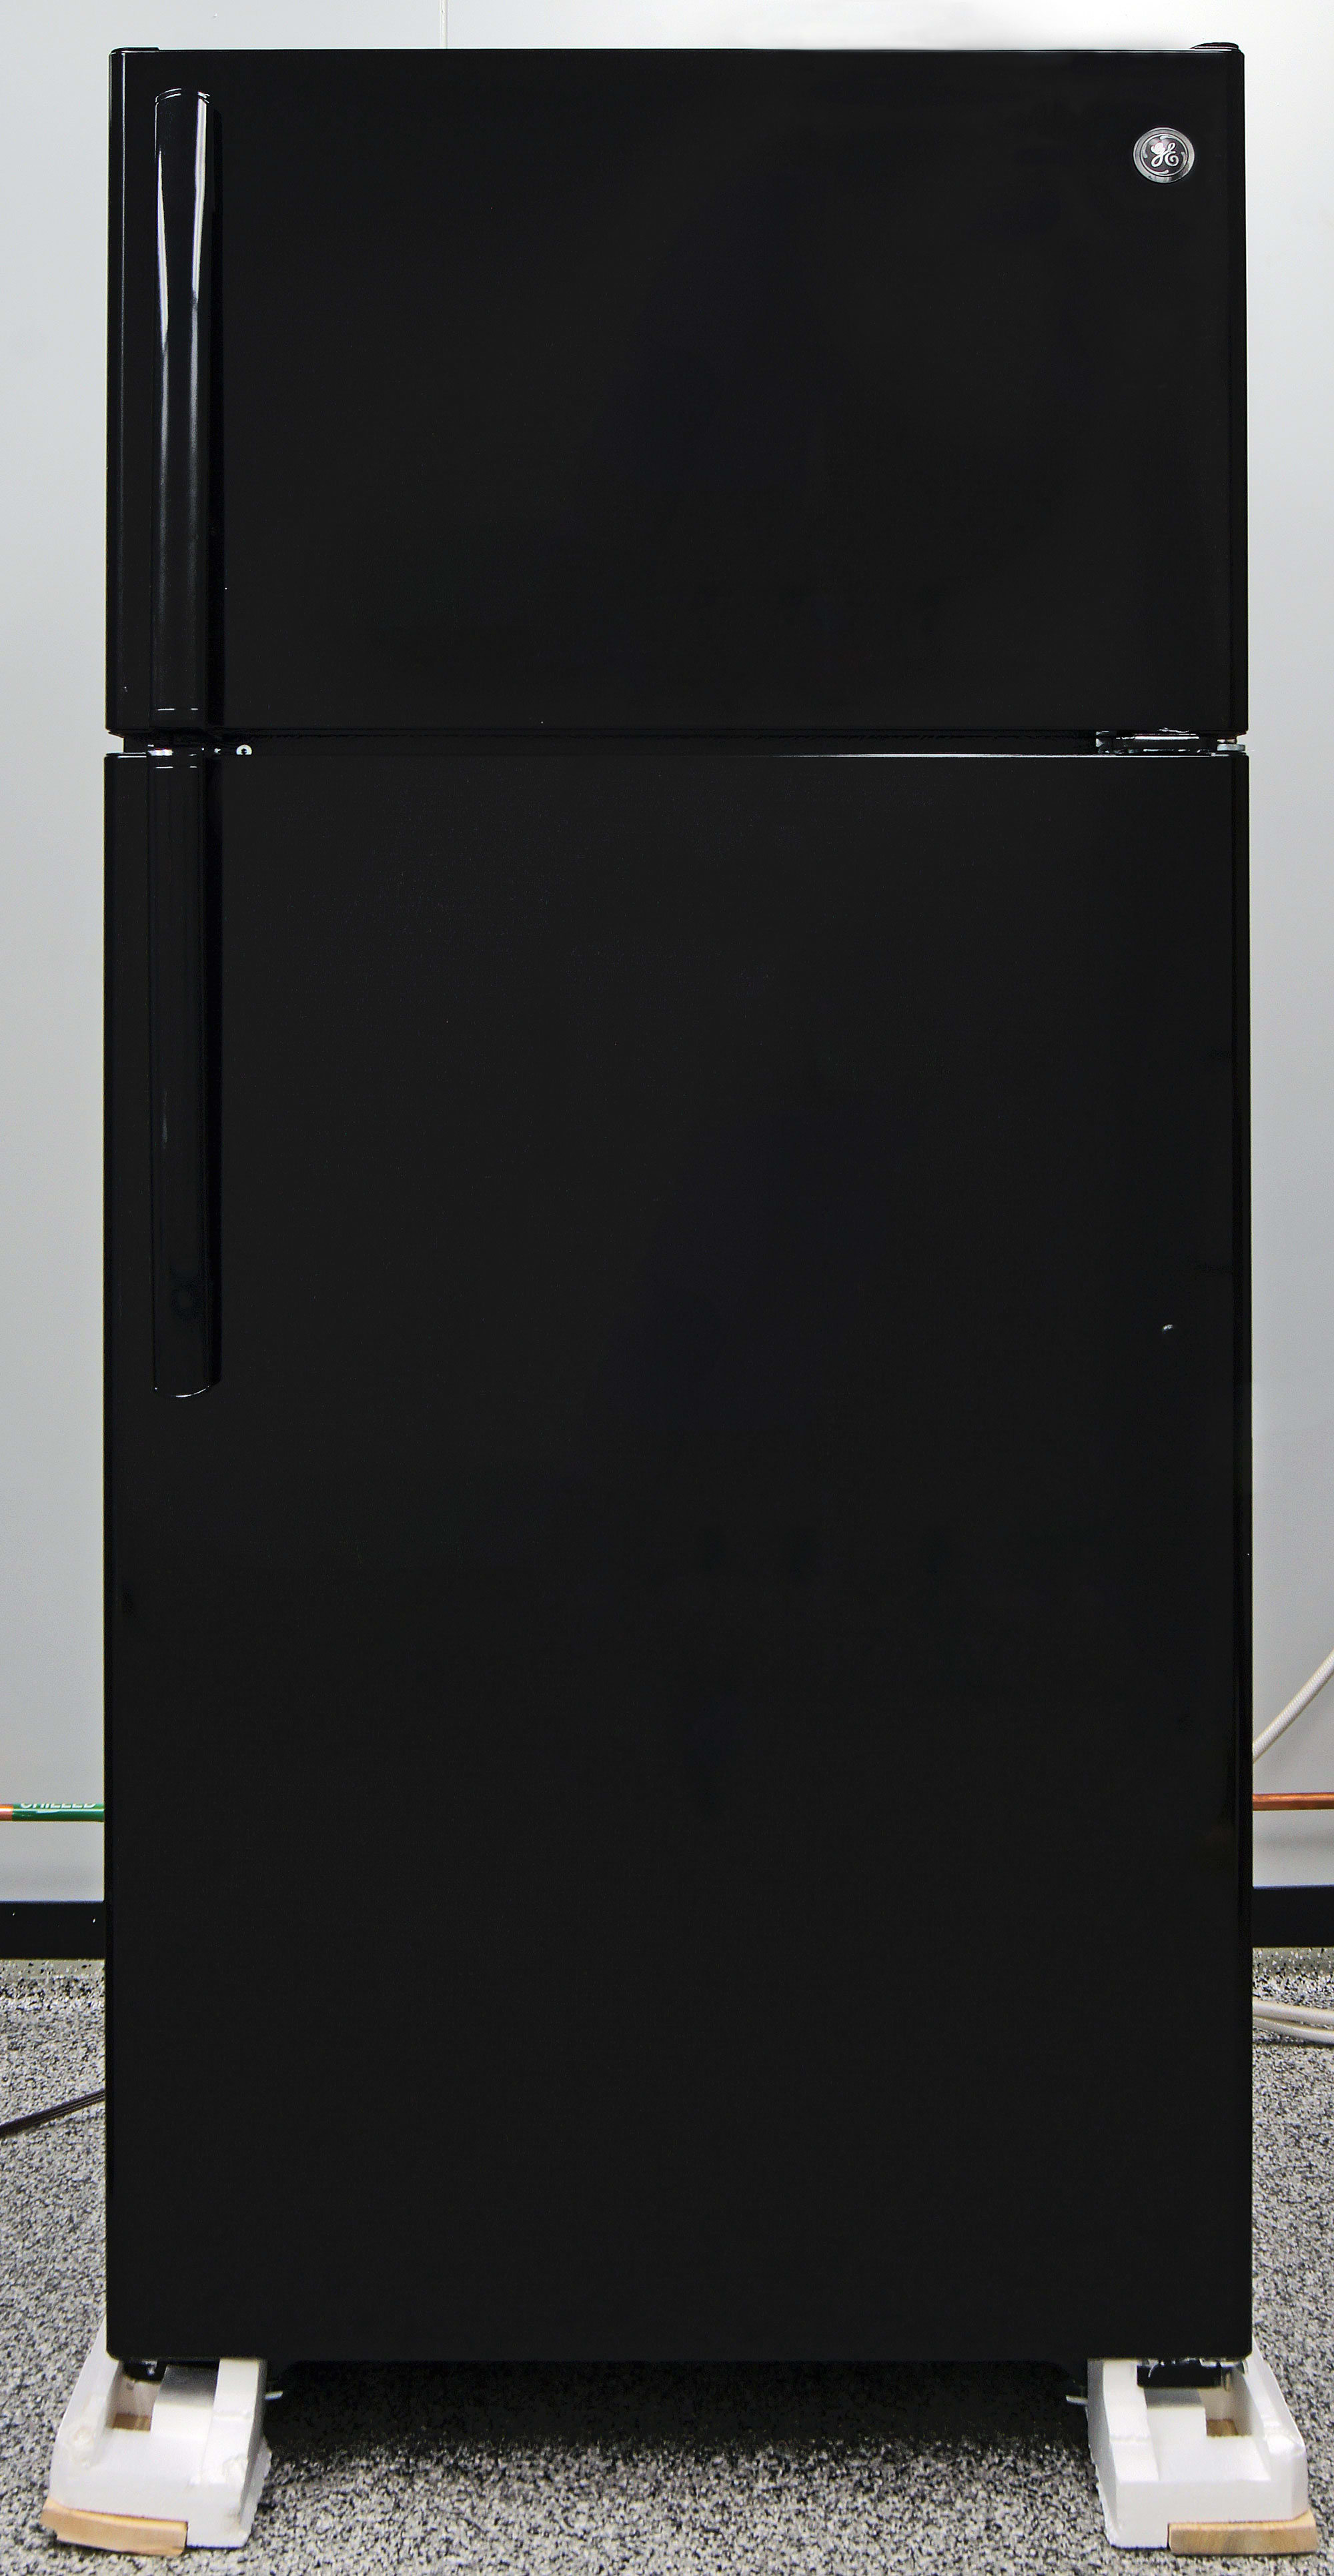 A little black like the GE GIE16DGHBB fridge never goes out of style.